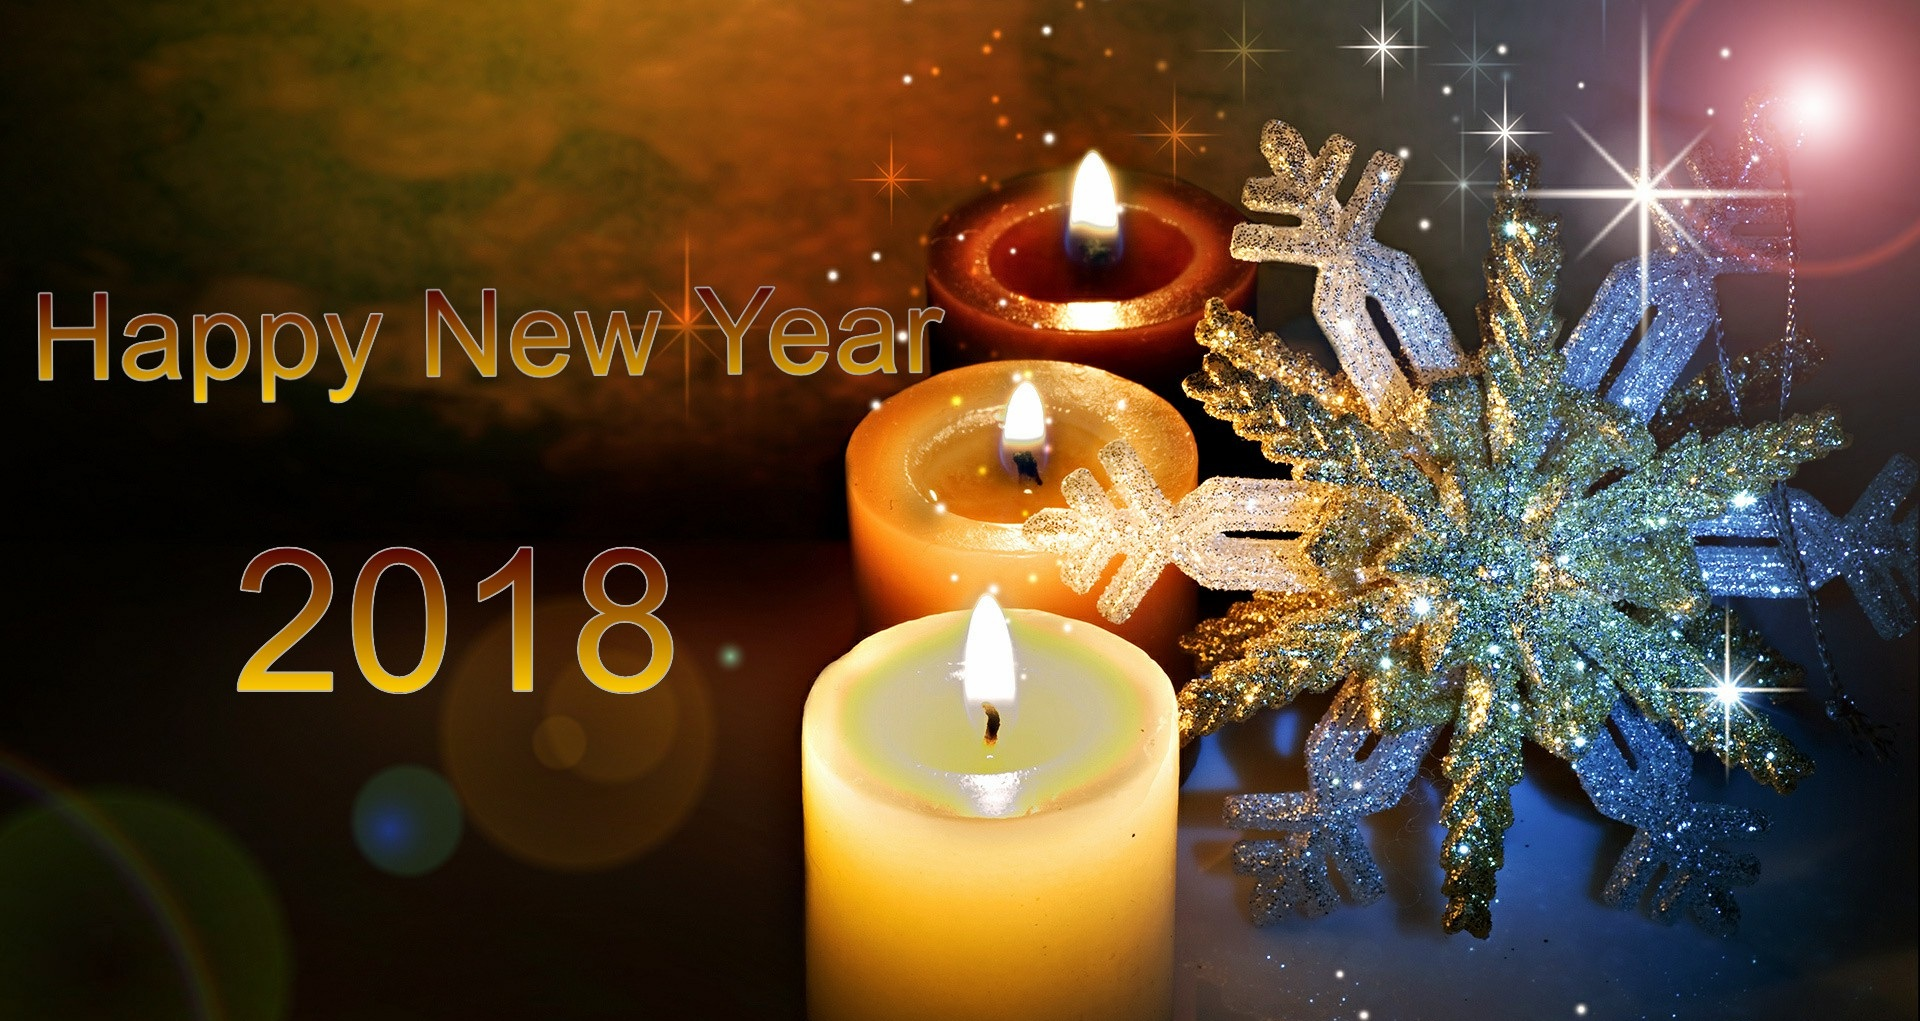 in this post we are sharing 30 beautiful new year 2018 wallpapers which you can use to prettify your desktop 30 happy new year 2018 hd wallpapers to